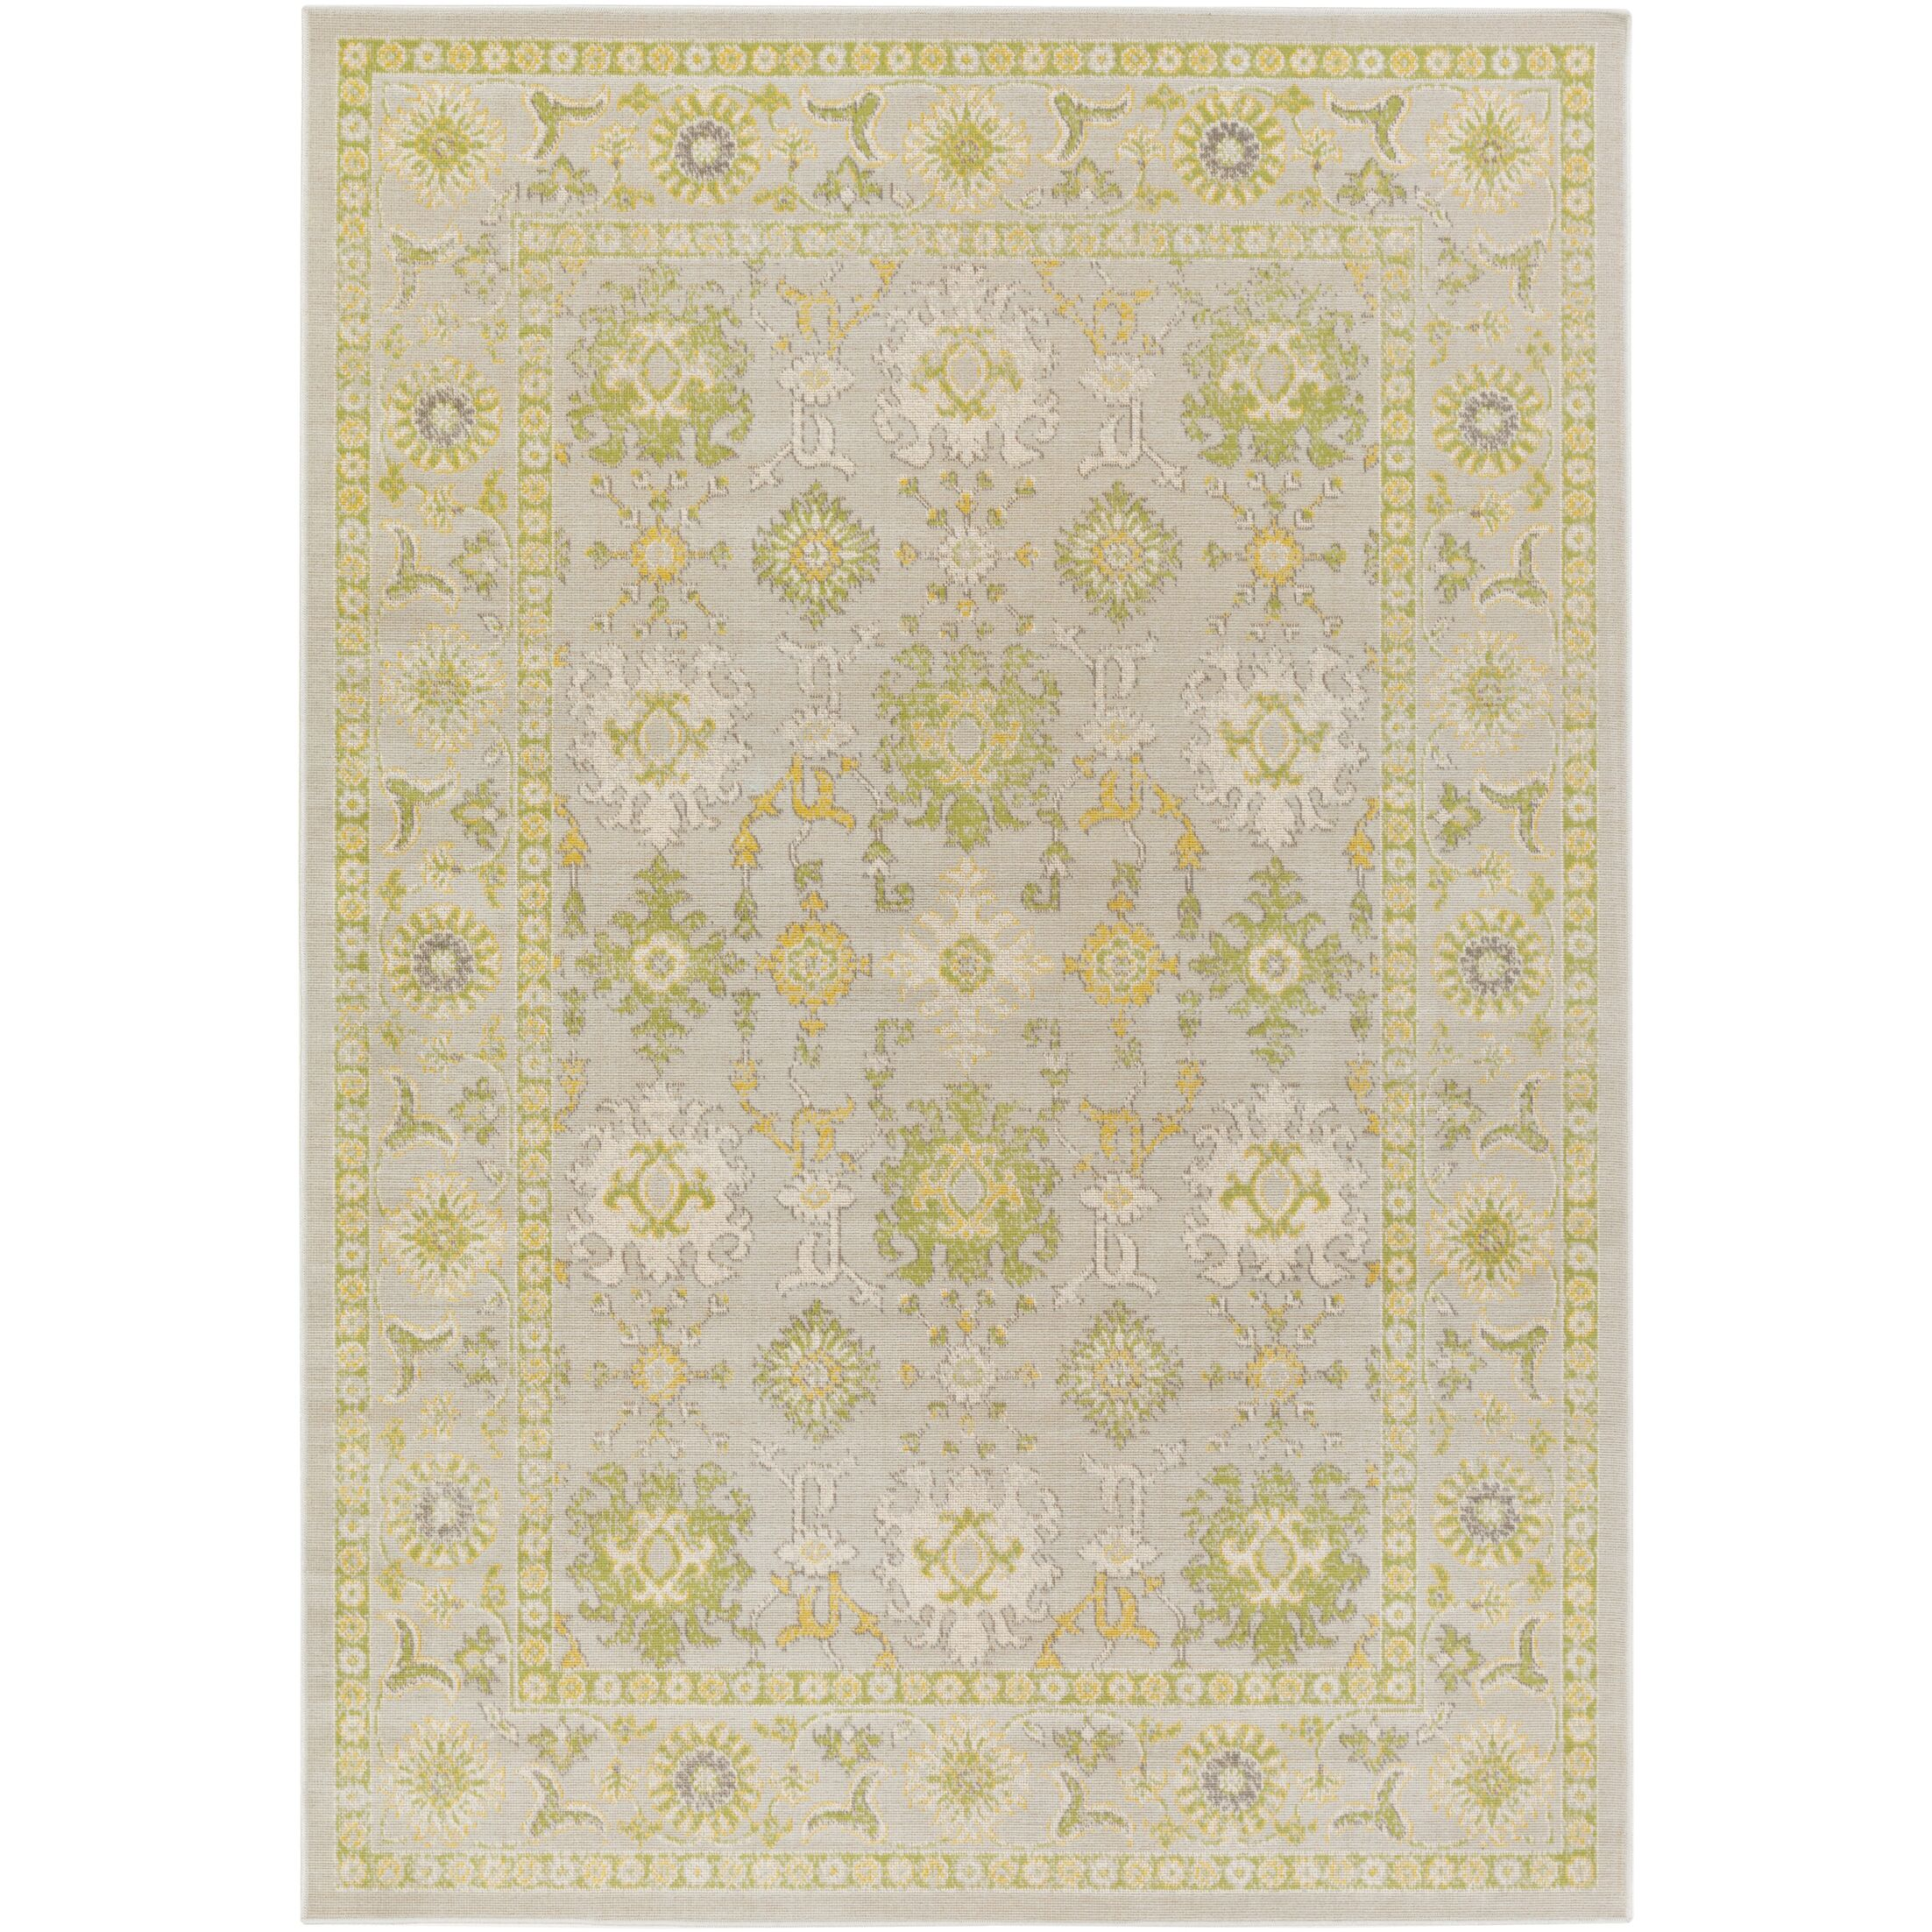 Velay Gray/Green Area Rug Rug Size: Rectangle 6'9